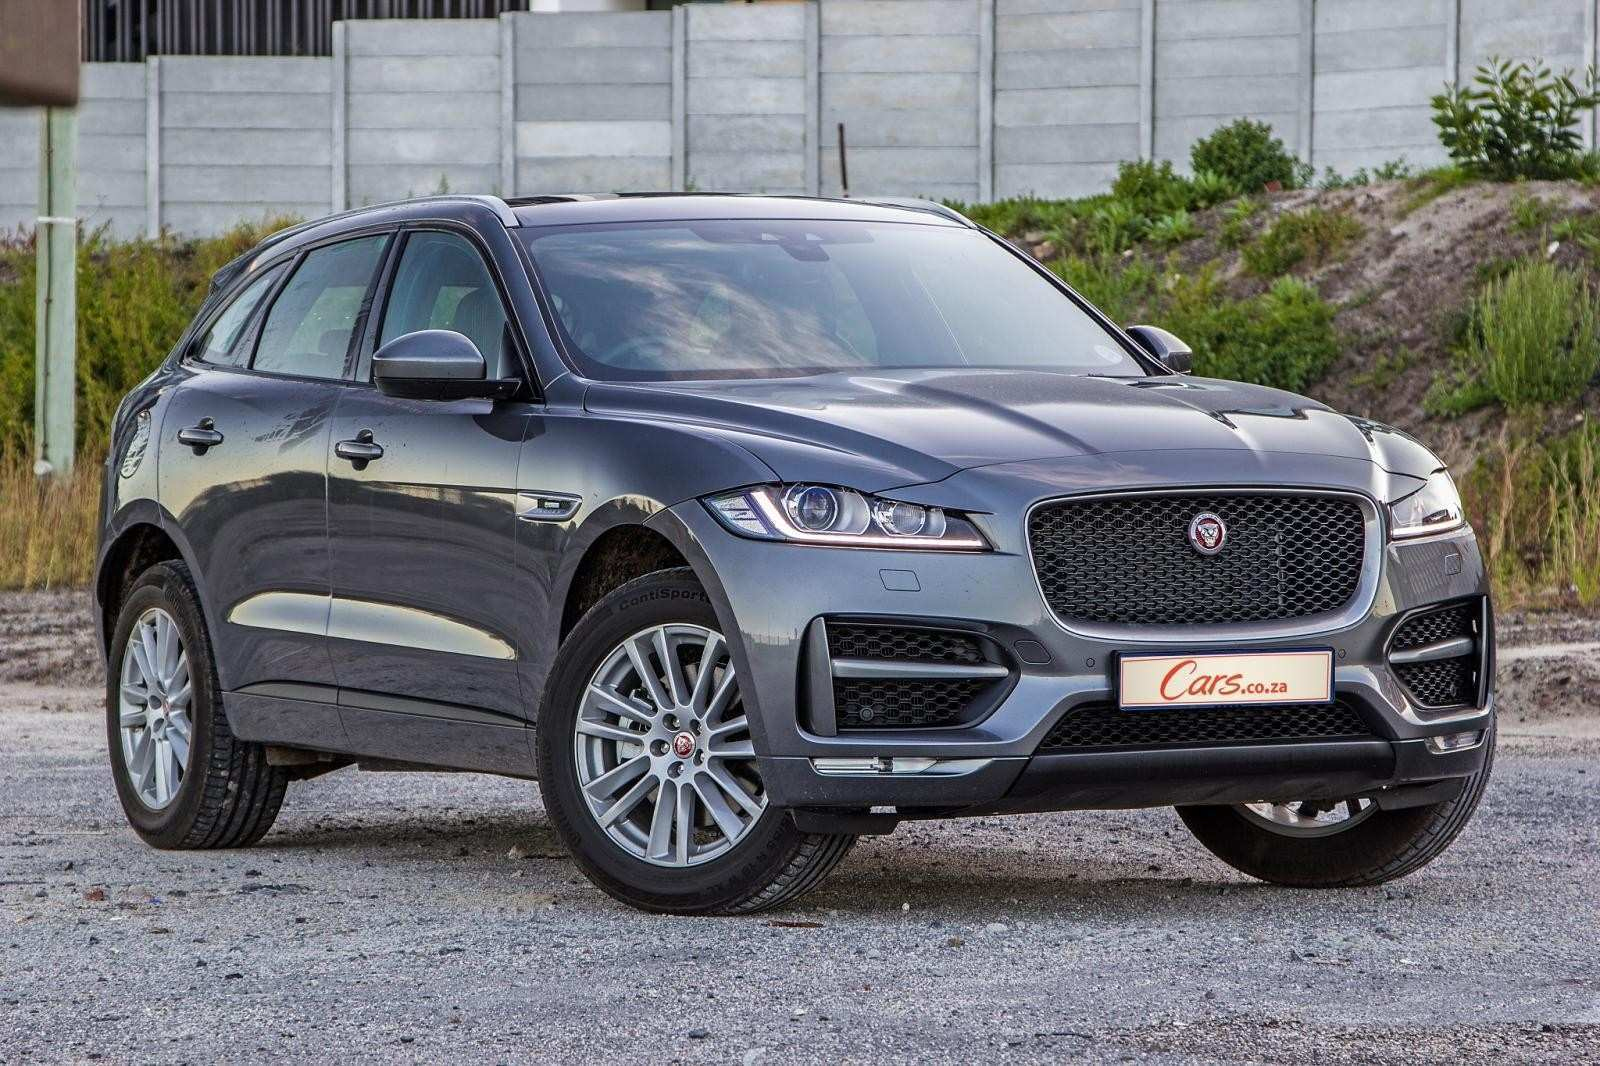 70 The 2019 Jaguar C X17 Crossover Engine